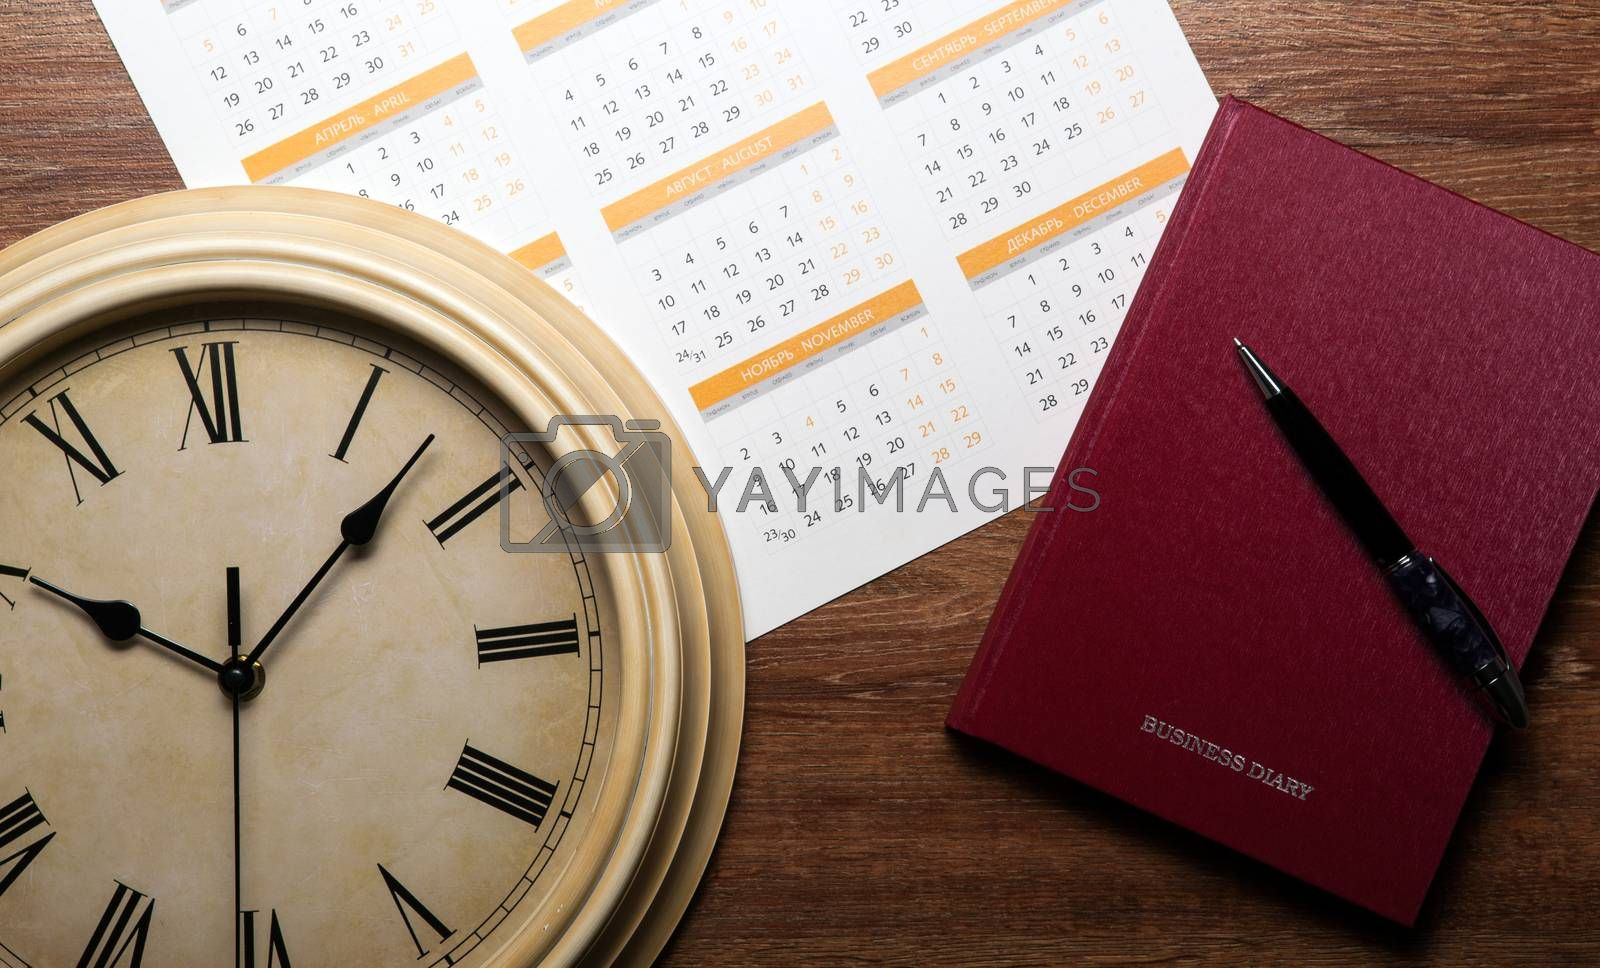 Royalty free image of diary with large pen on the oak desk by mizar_21984